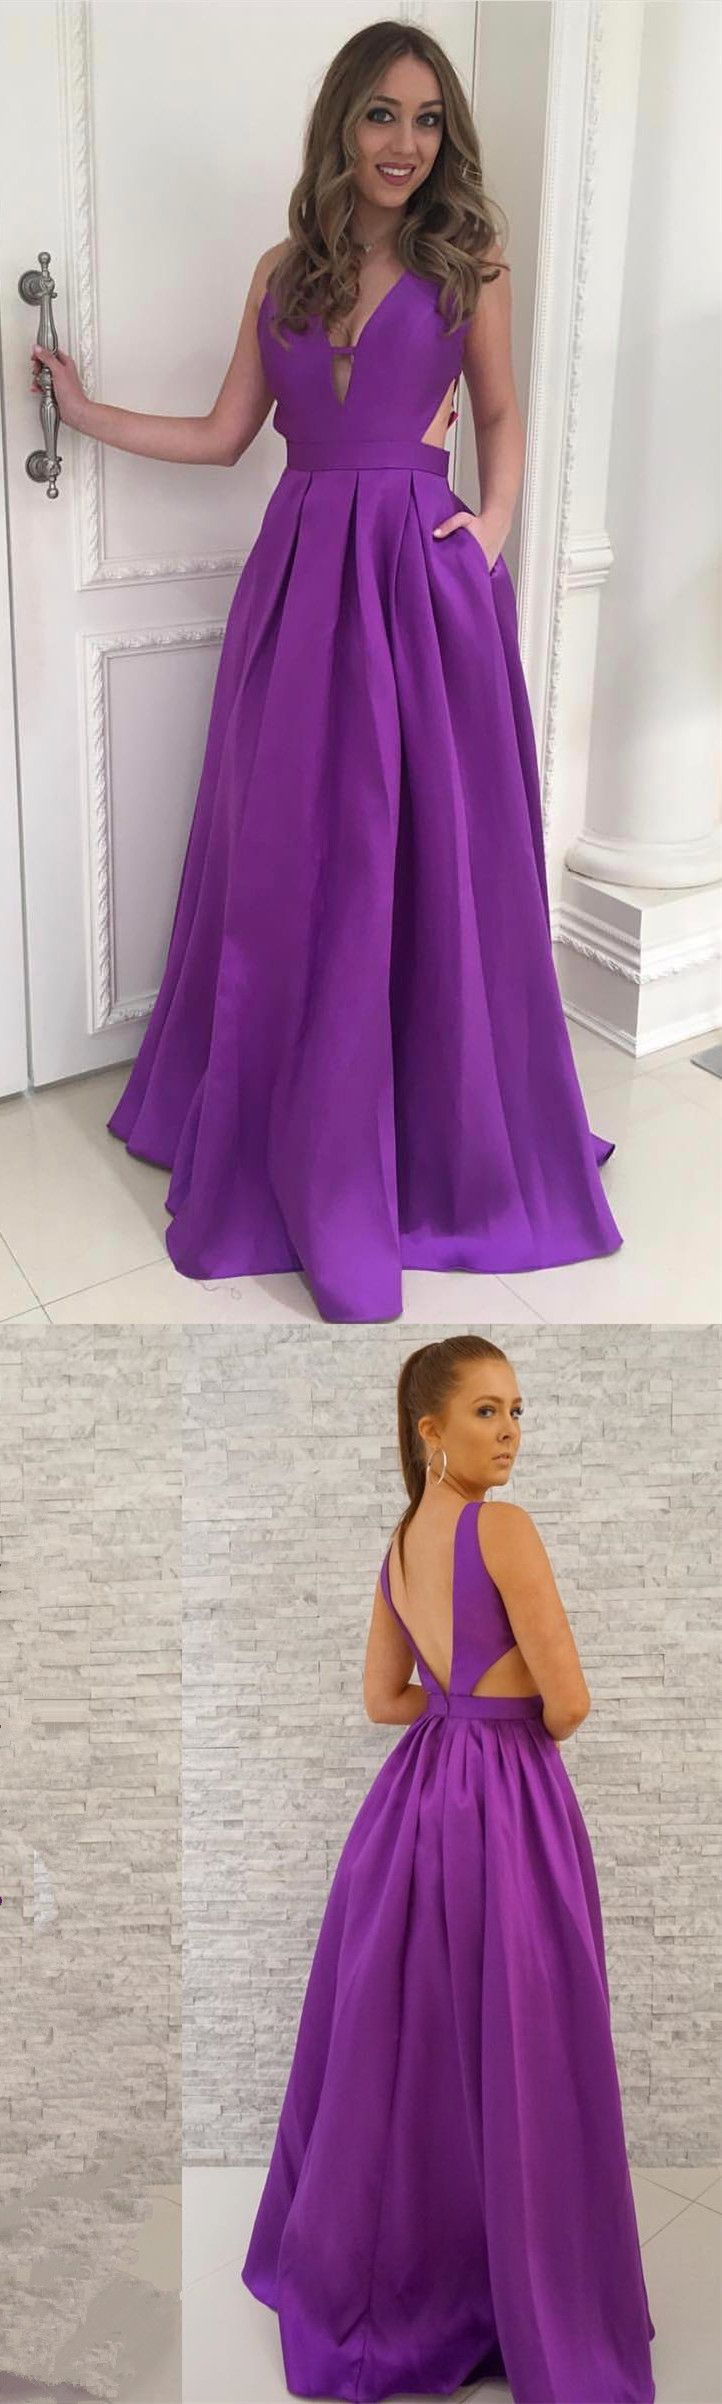 Long prom dress with pockets purple long prom dress prom dresses